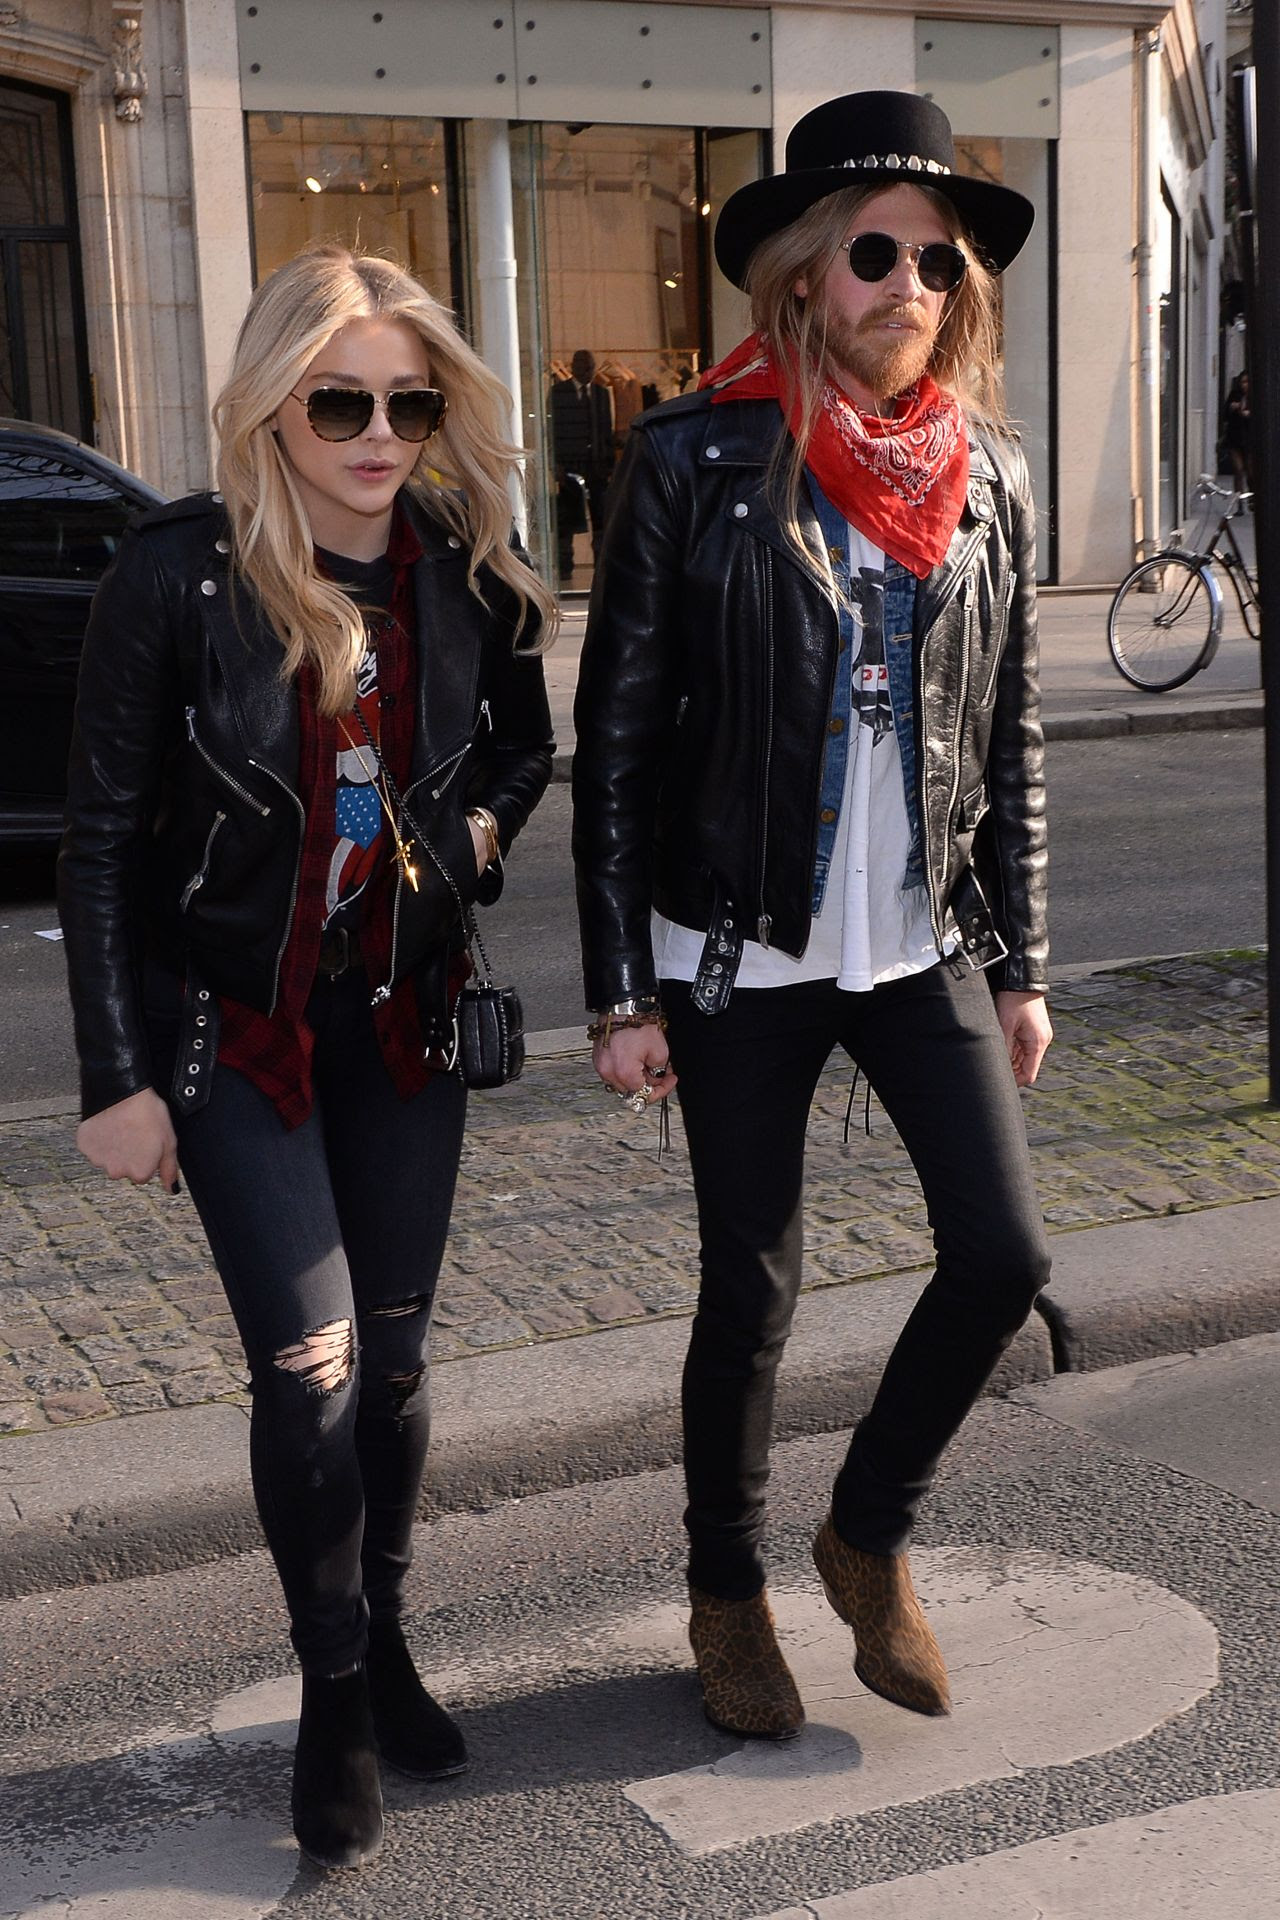 http://celebmafia.com/wp-content/uploads/2015/03/chloe-moretz-street-style-out-in-paris-march-2015_6.jpg